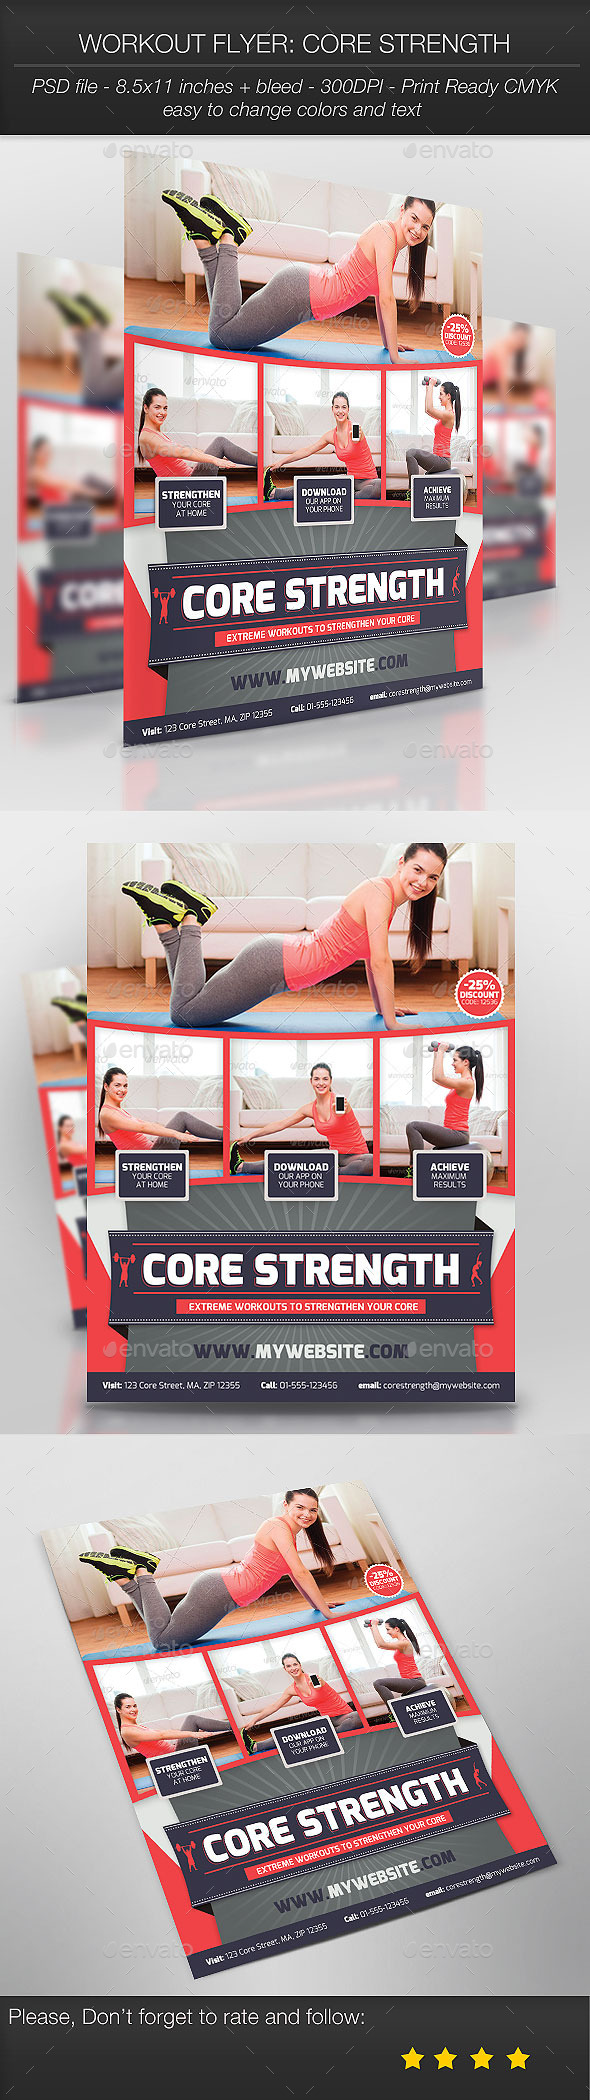 GraphicRiver Workout Flyer Core Strength 9326657